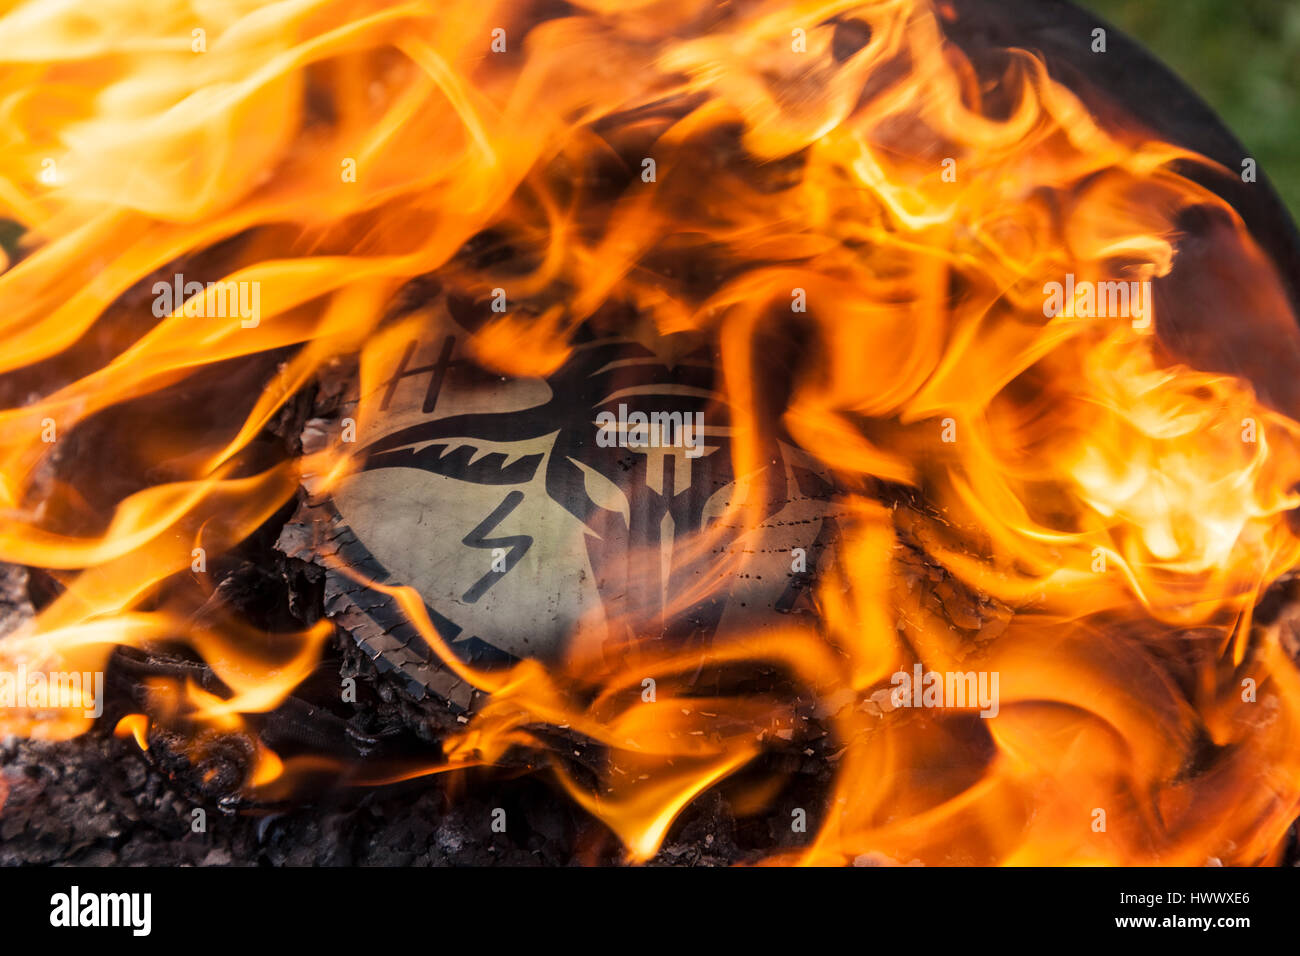 The mark of a company that no longer exists going up in flames. - Stock Image